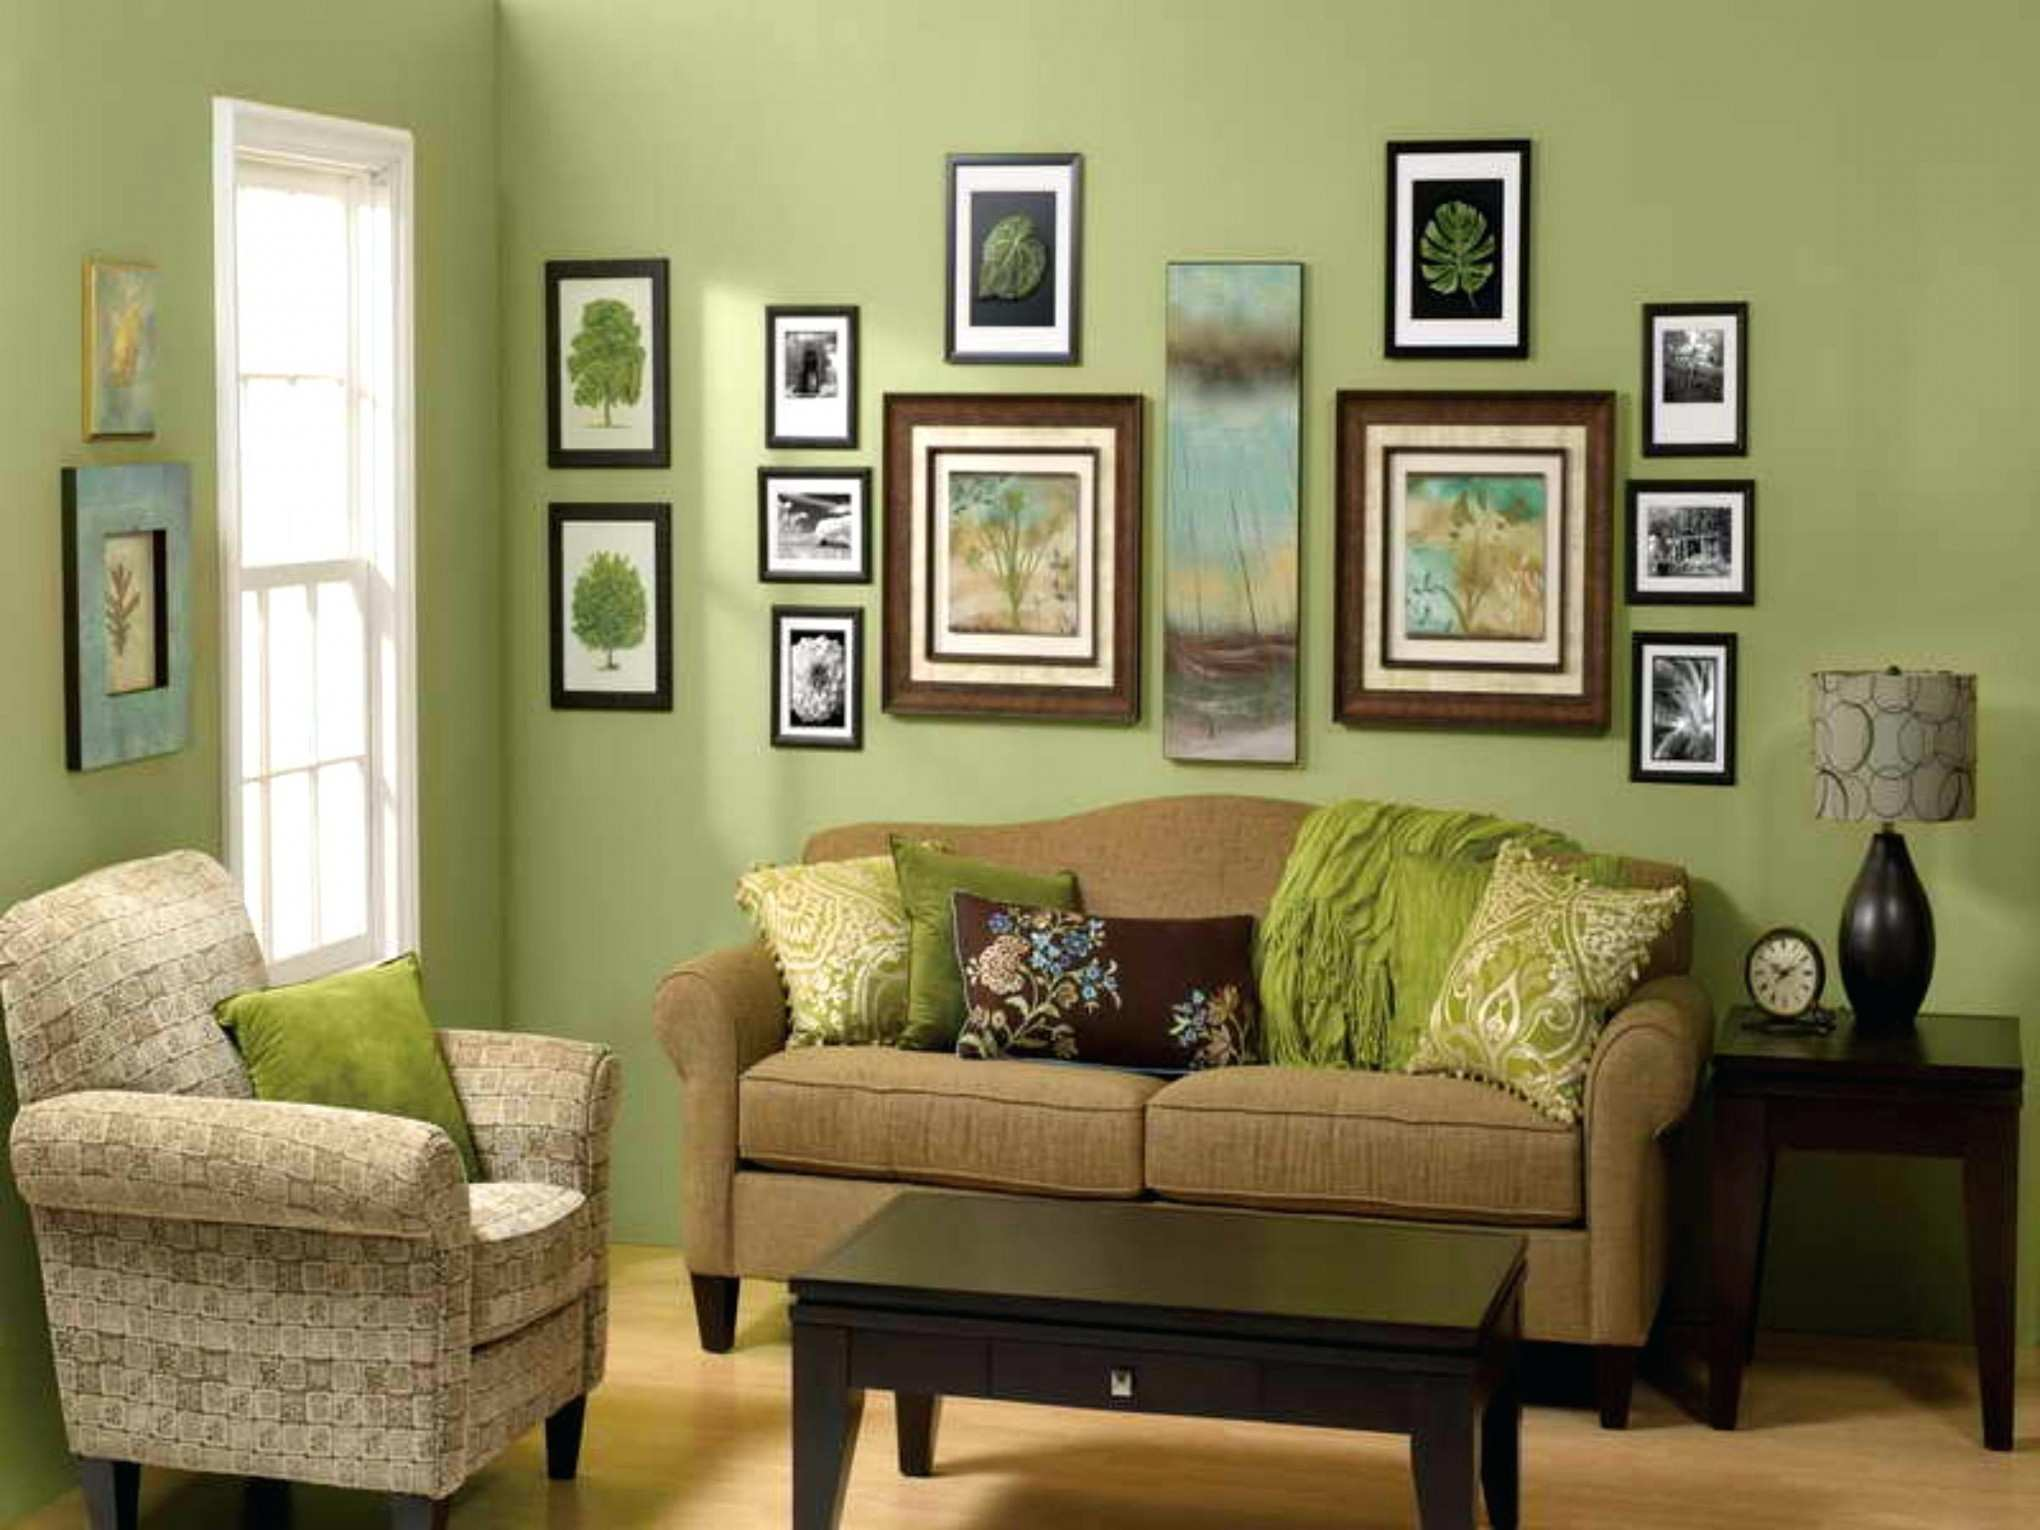 Wall Ideas Frameshoto Frame Art Without Bedroom With Lights